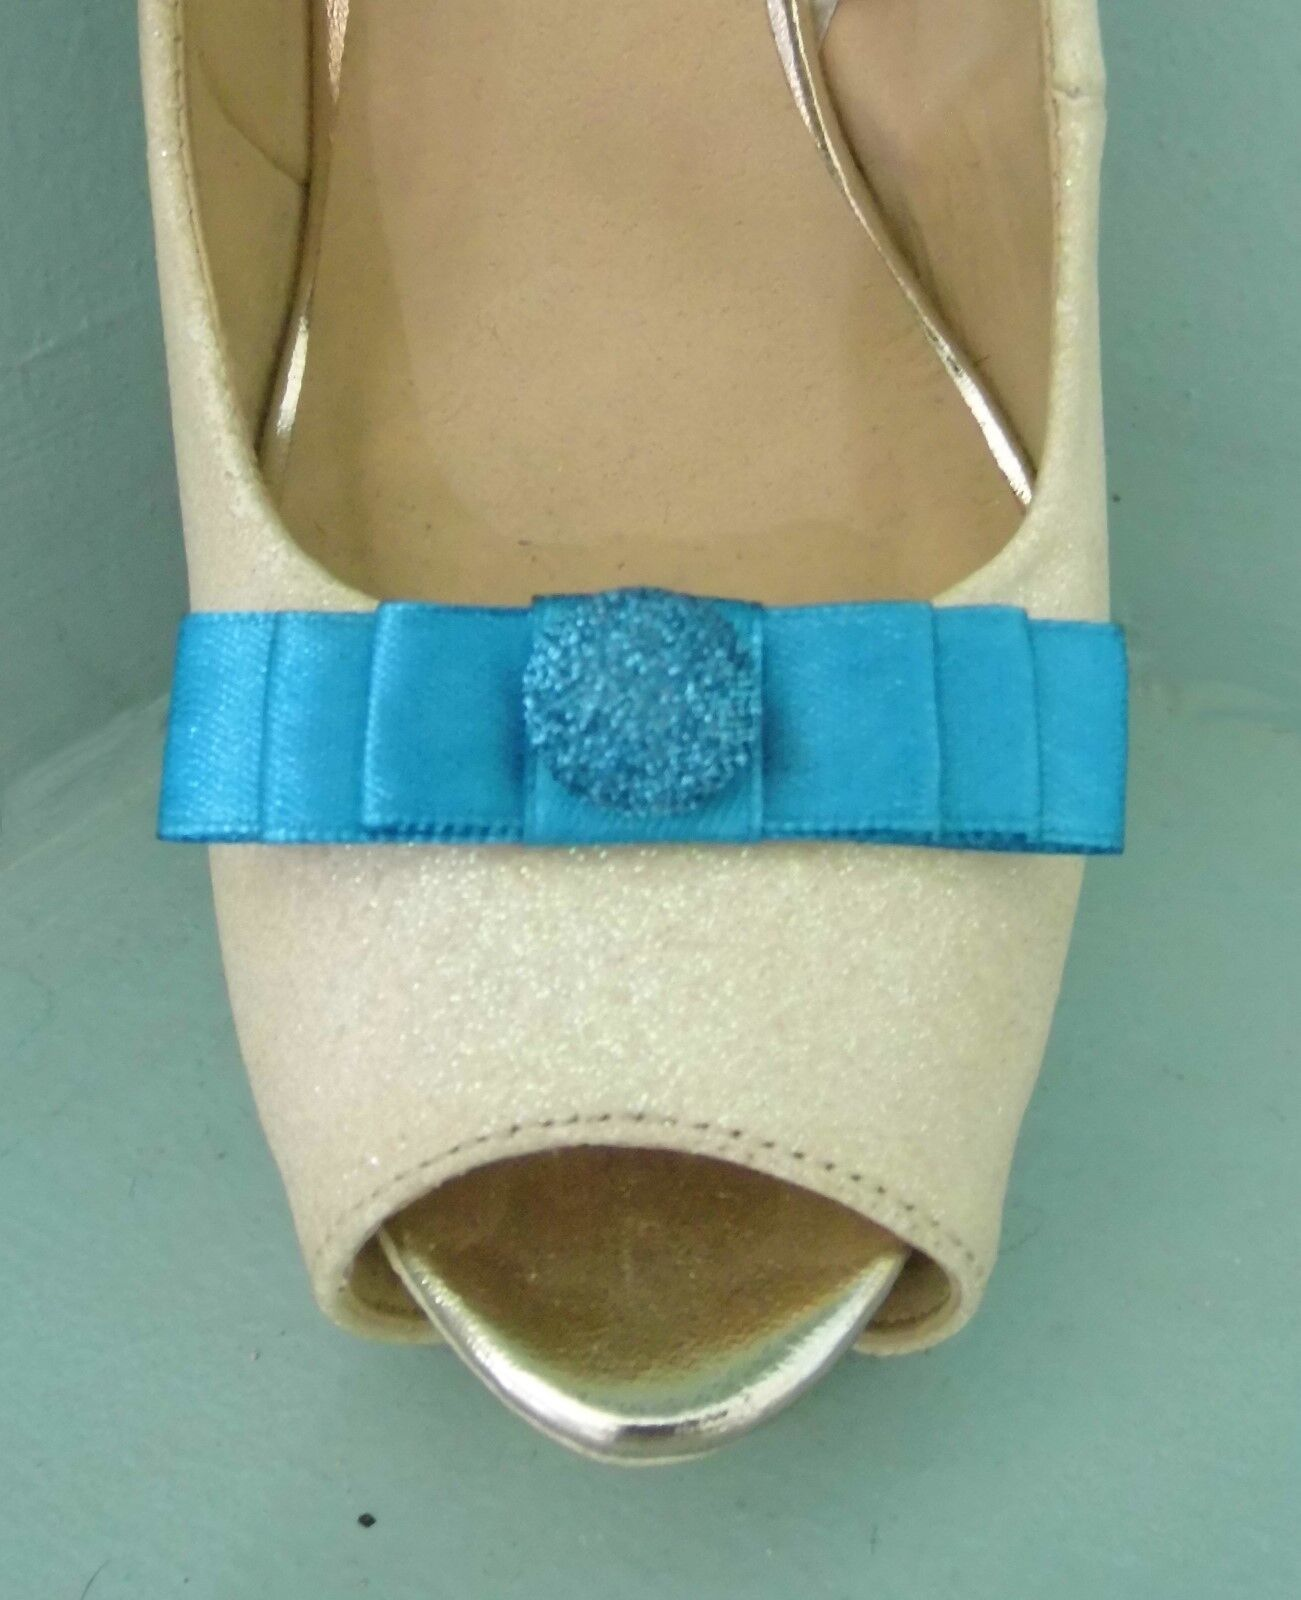 2 Small Turquoise Bow Clips for Shoes with Glittery Button Centre